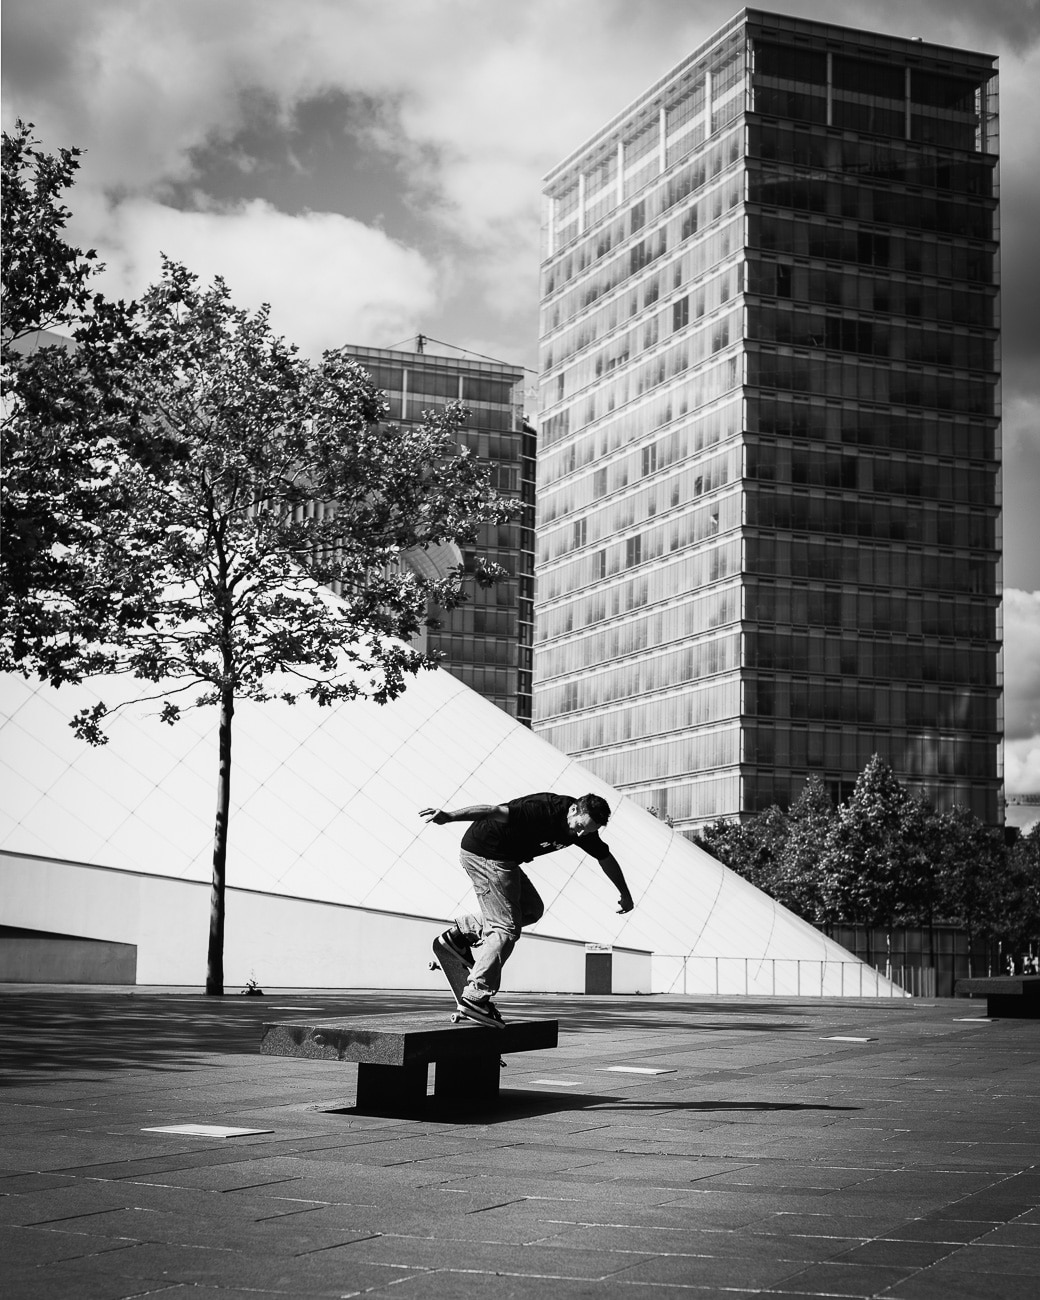 Luxemburg-irregularskatemag-tour-26